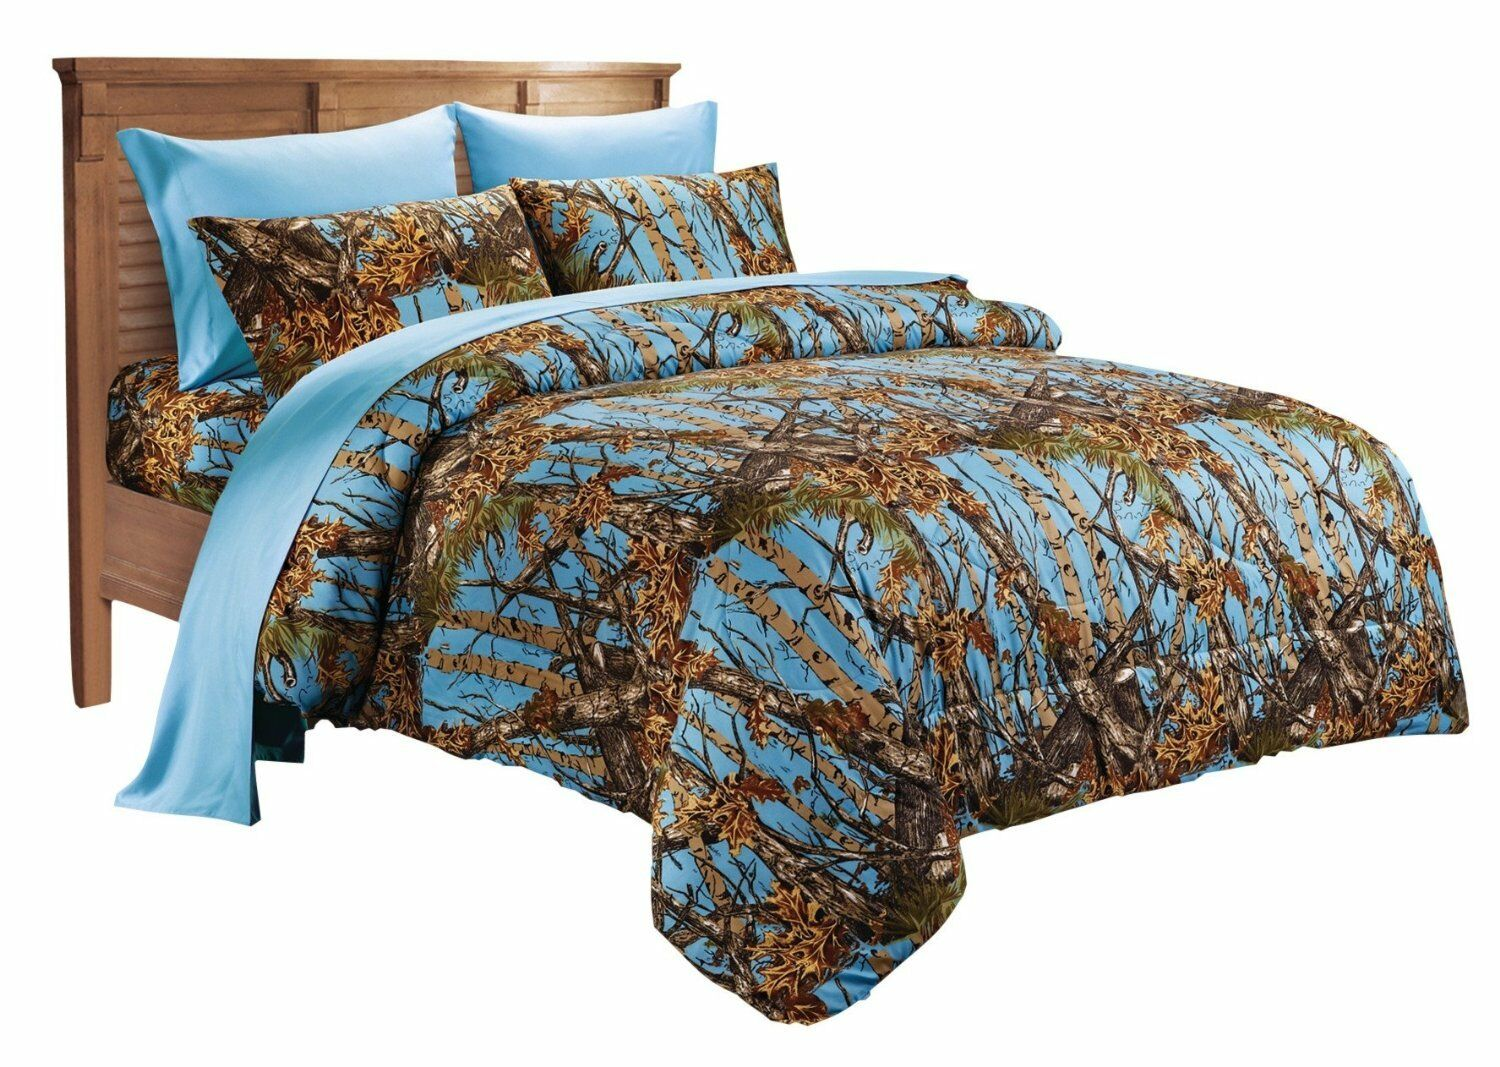 WOODS QUEEN SIZE 7PC SET POWDER BLUE CAMO COMFORTER SHEET CA